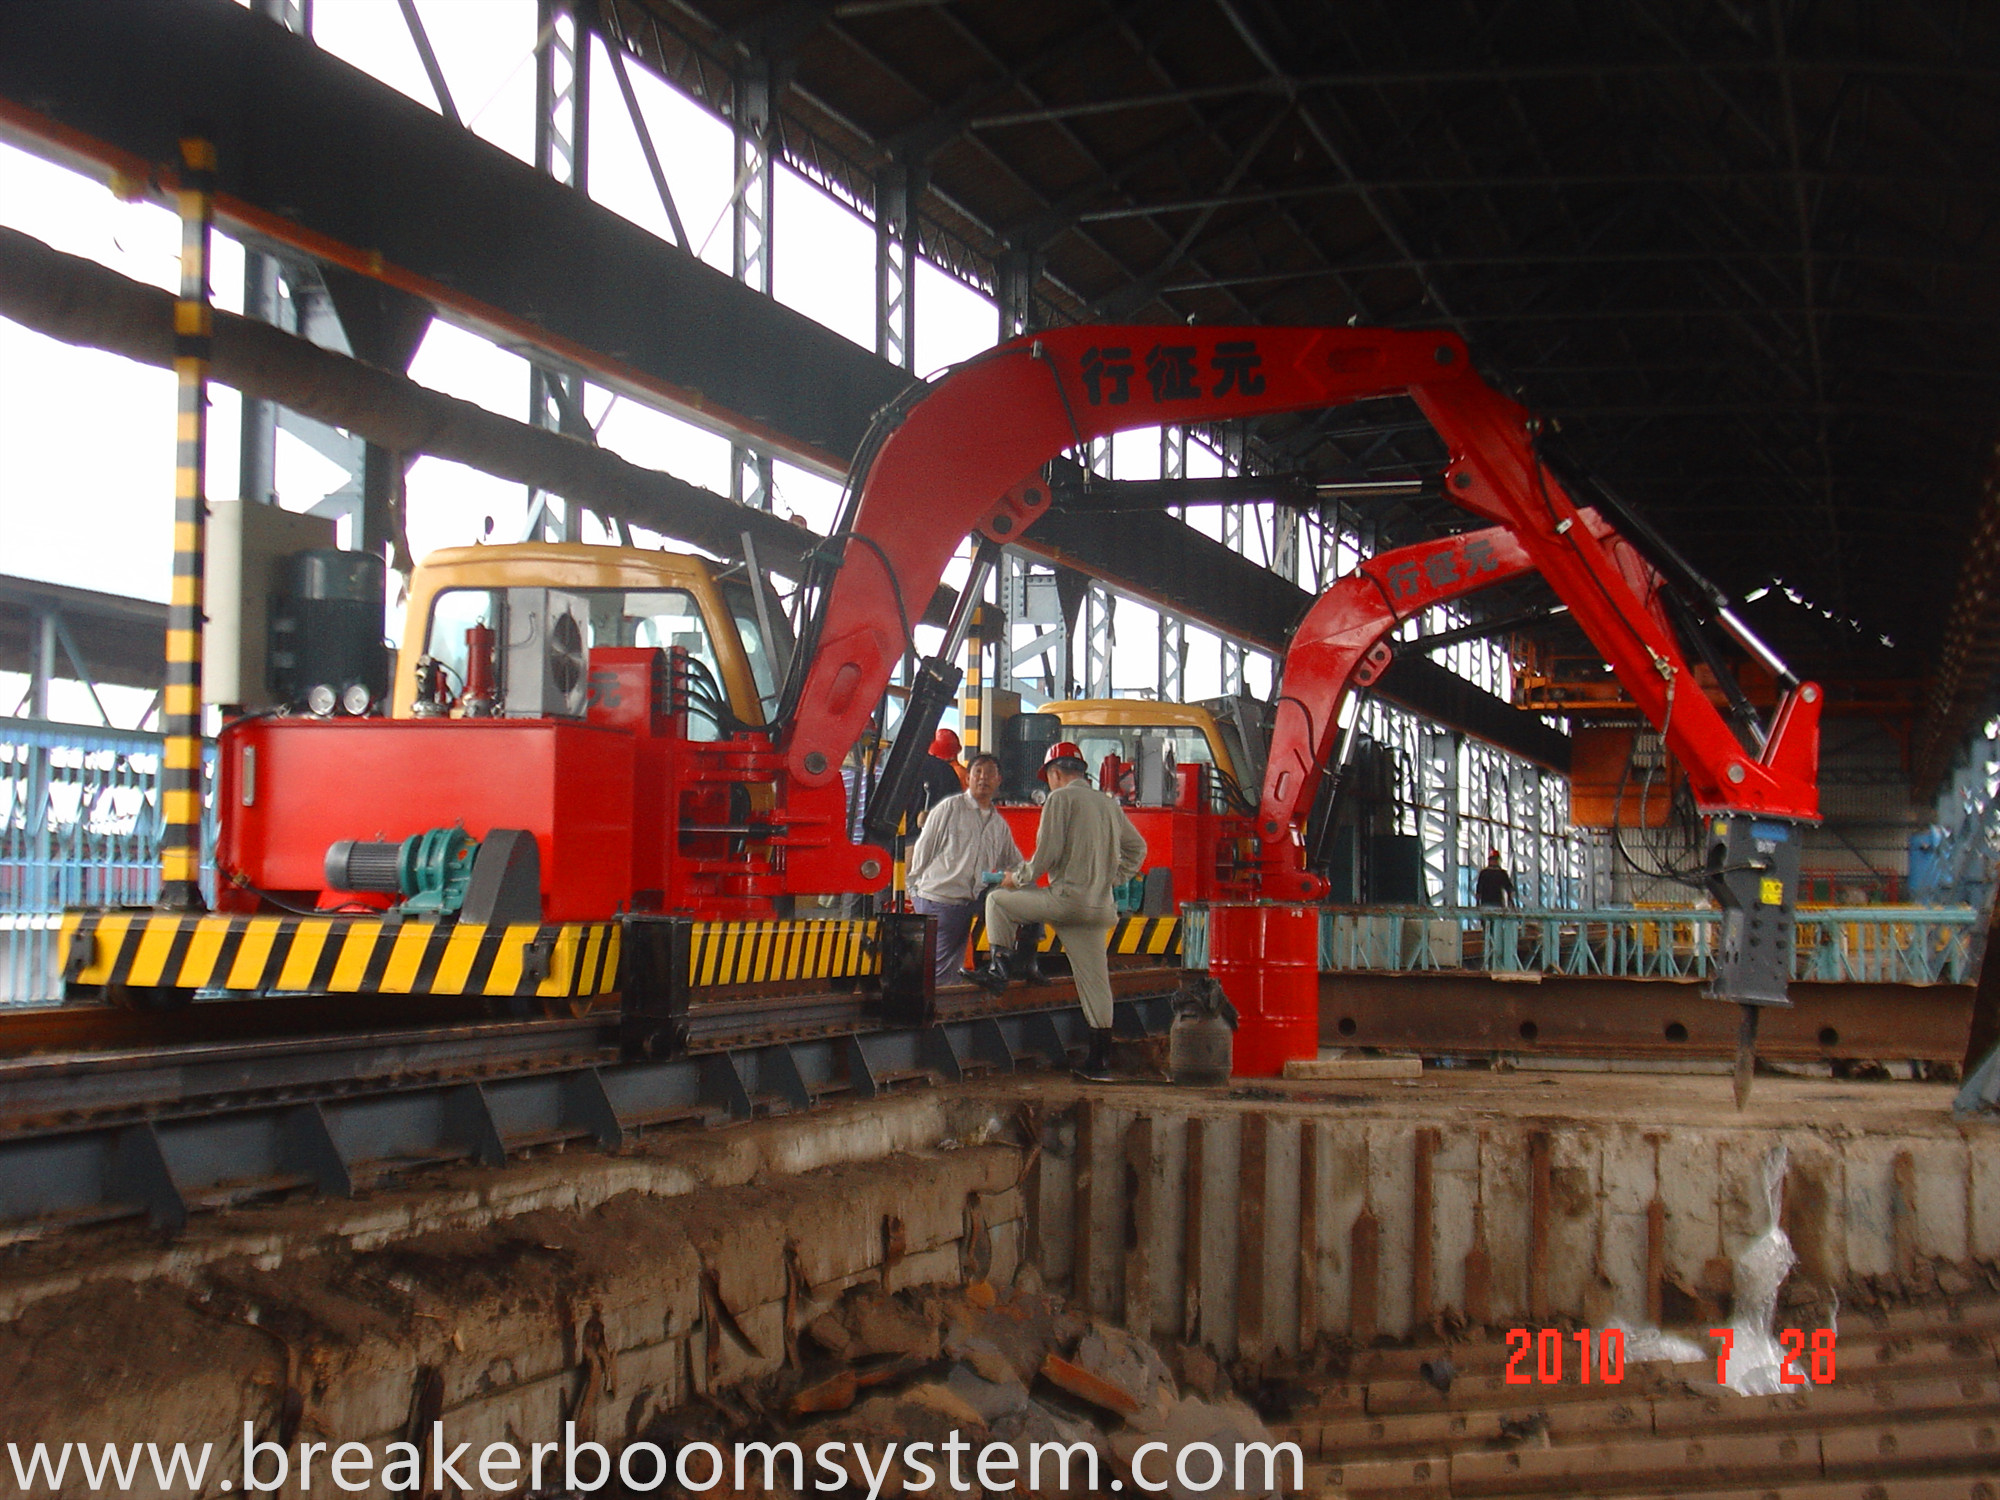 Fixed Type Rock Breaker Booms System